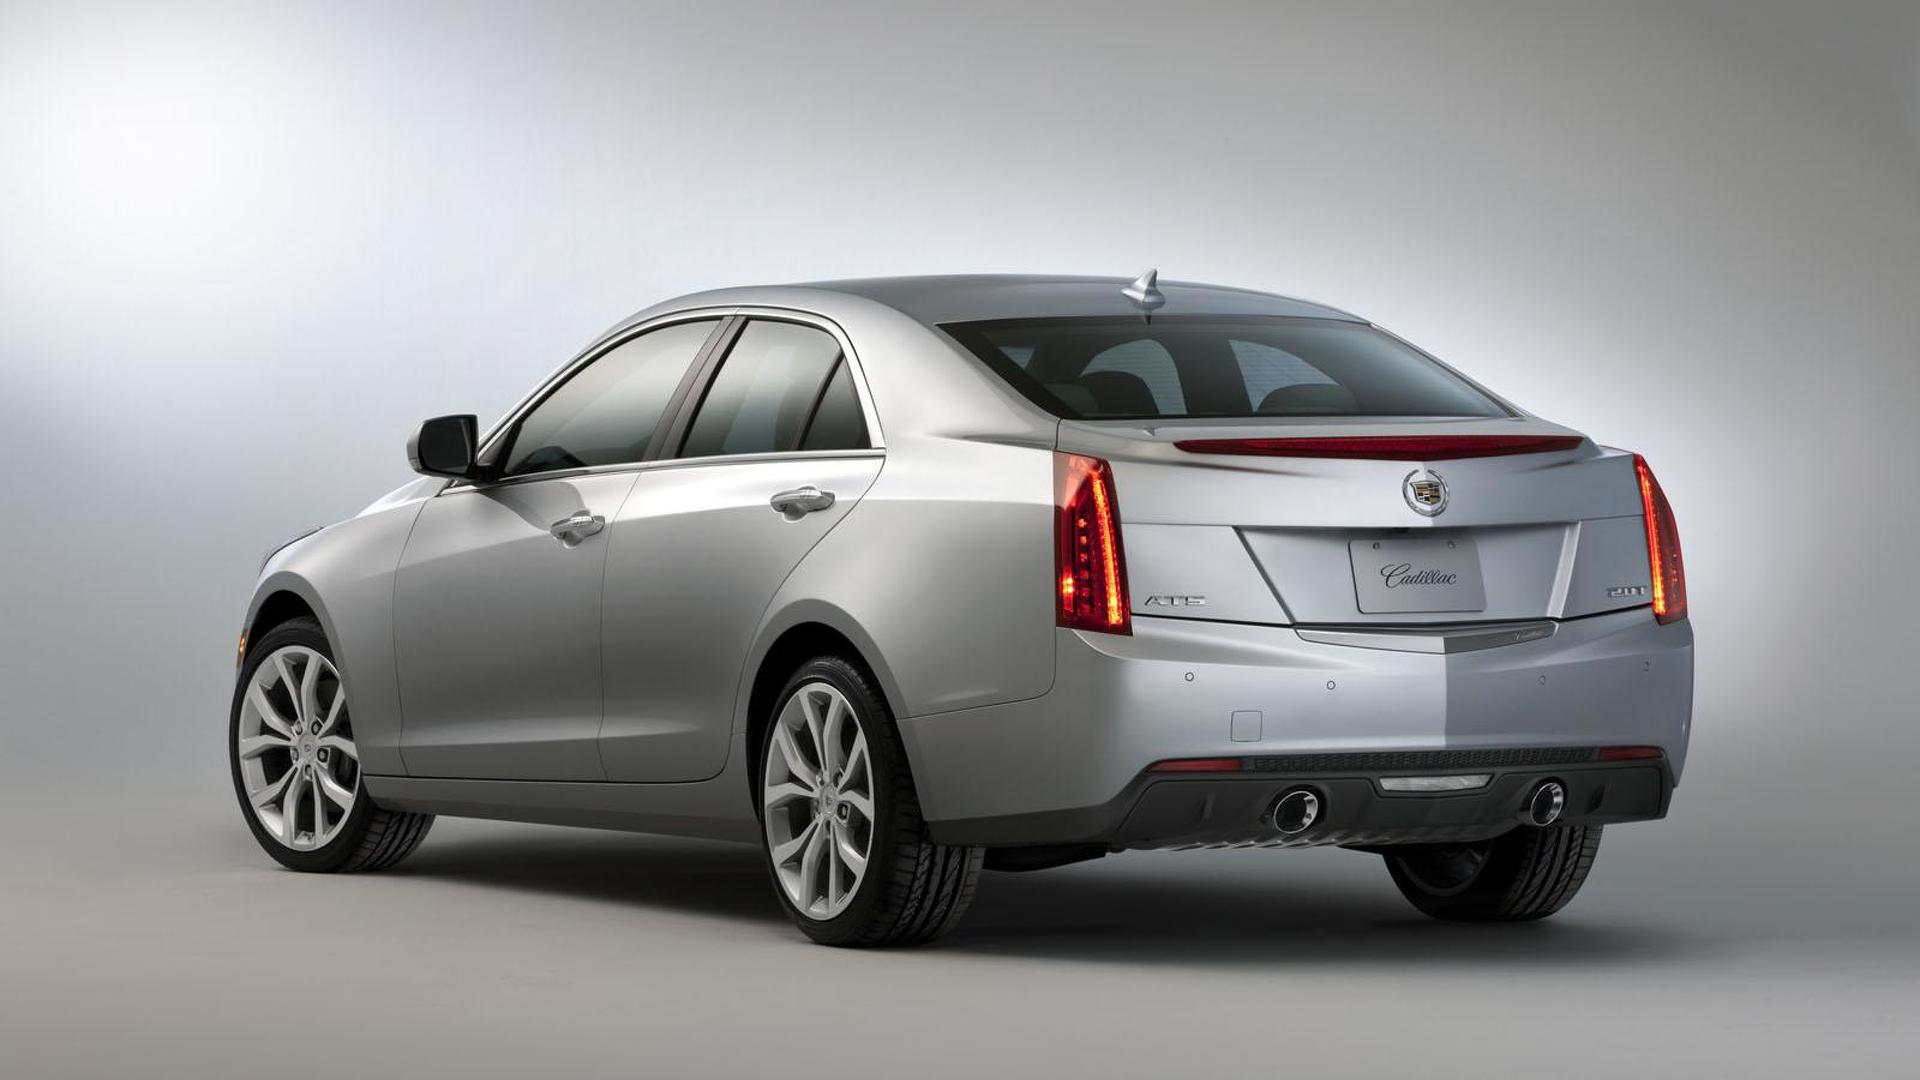 Cadillac planning to tone-down its design - report